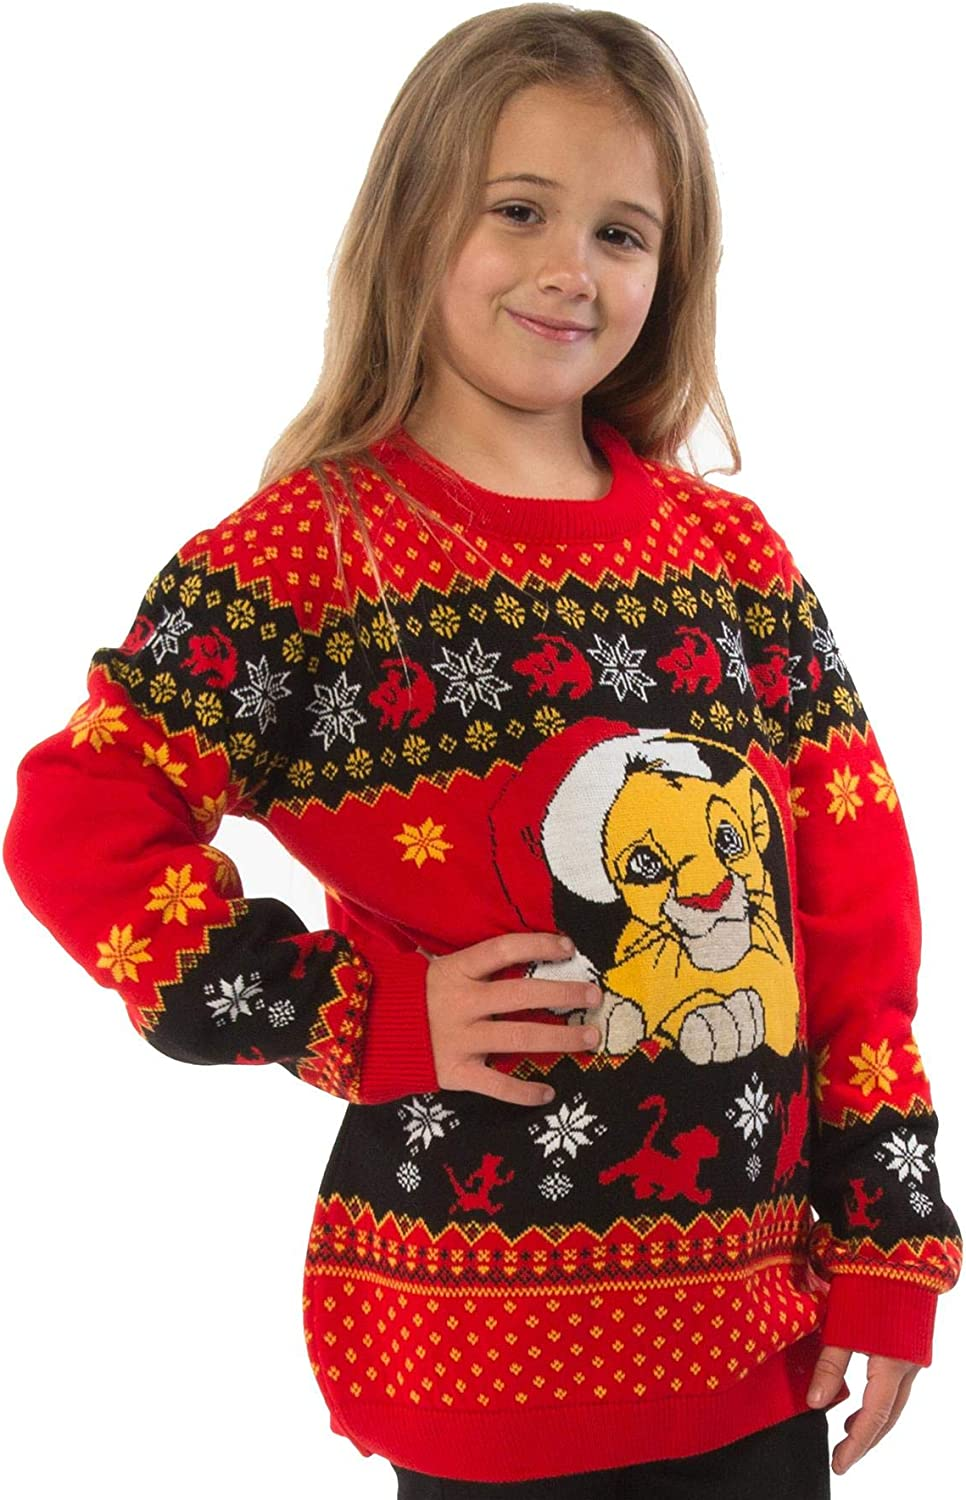 Official The Lion King Simba Childrens Red Knitted Christmas Jumper